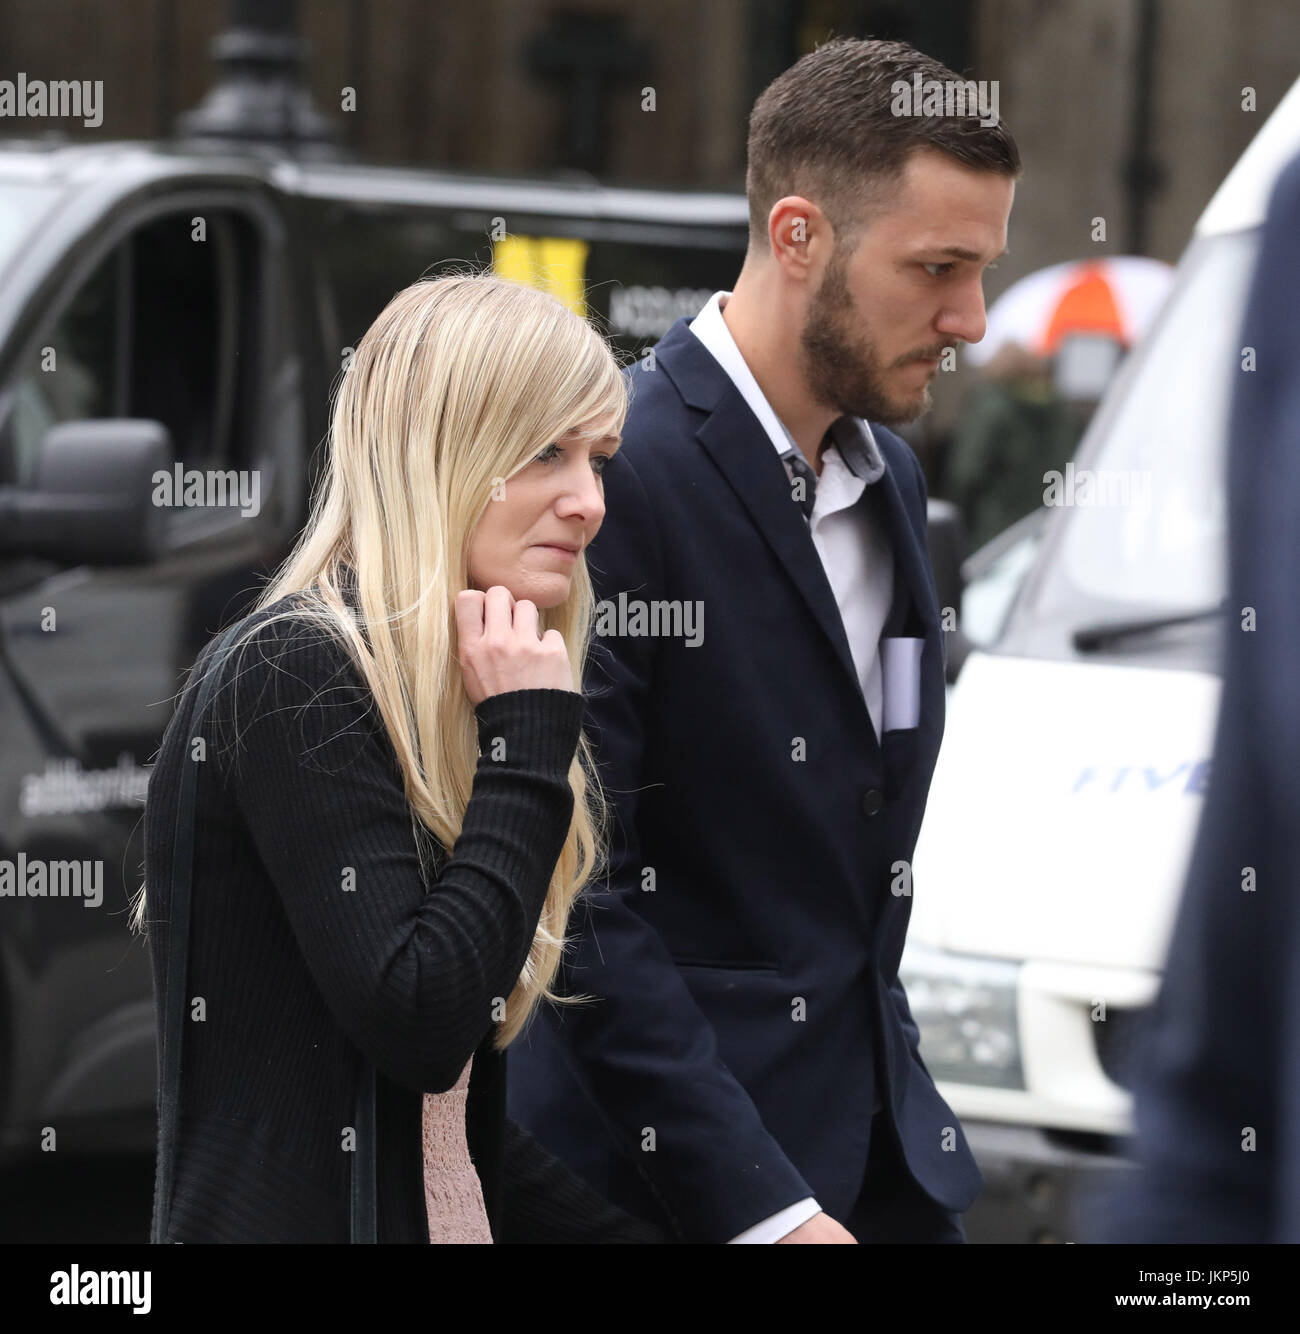 London, UK. 24th July, 2017. Pic shows:  24.7.17High Court LondonCharlie Gard parents Connie Yates and Chris Gard Stock Photo